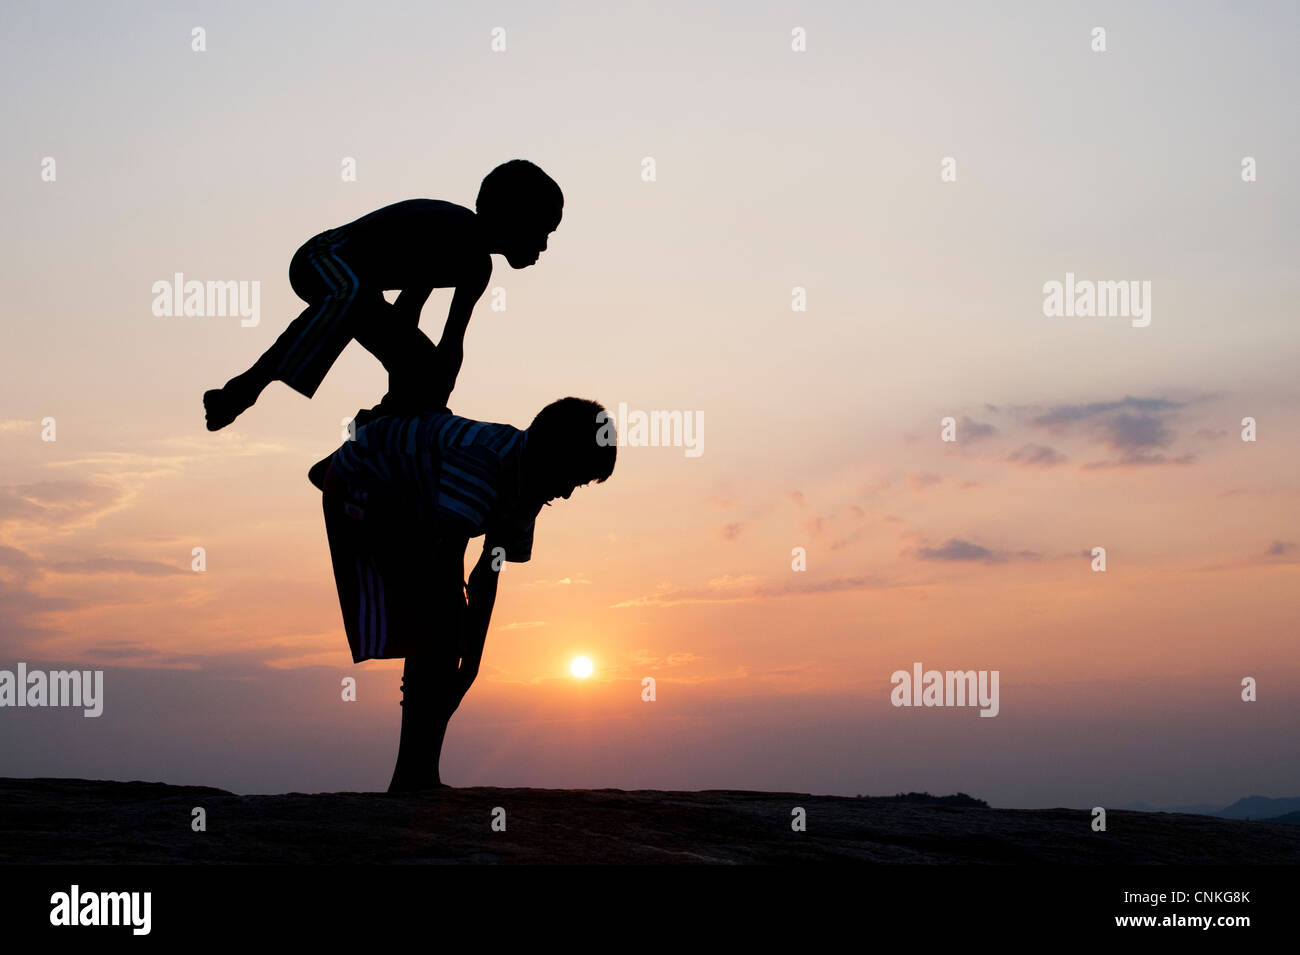 Silhouette of young Indian boys playing leap frog against at sunset. India - Stock Image